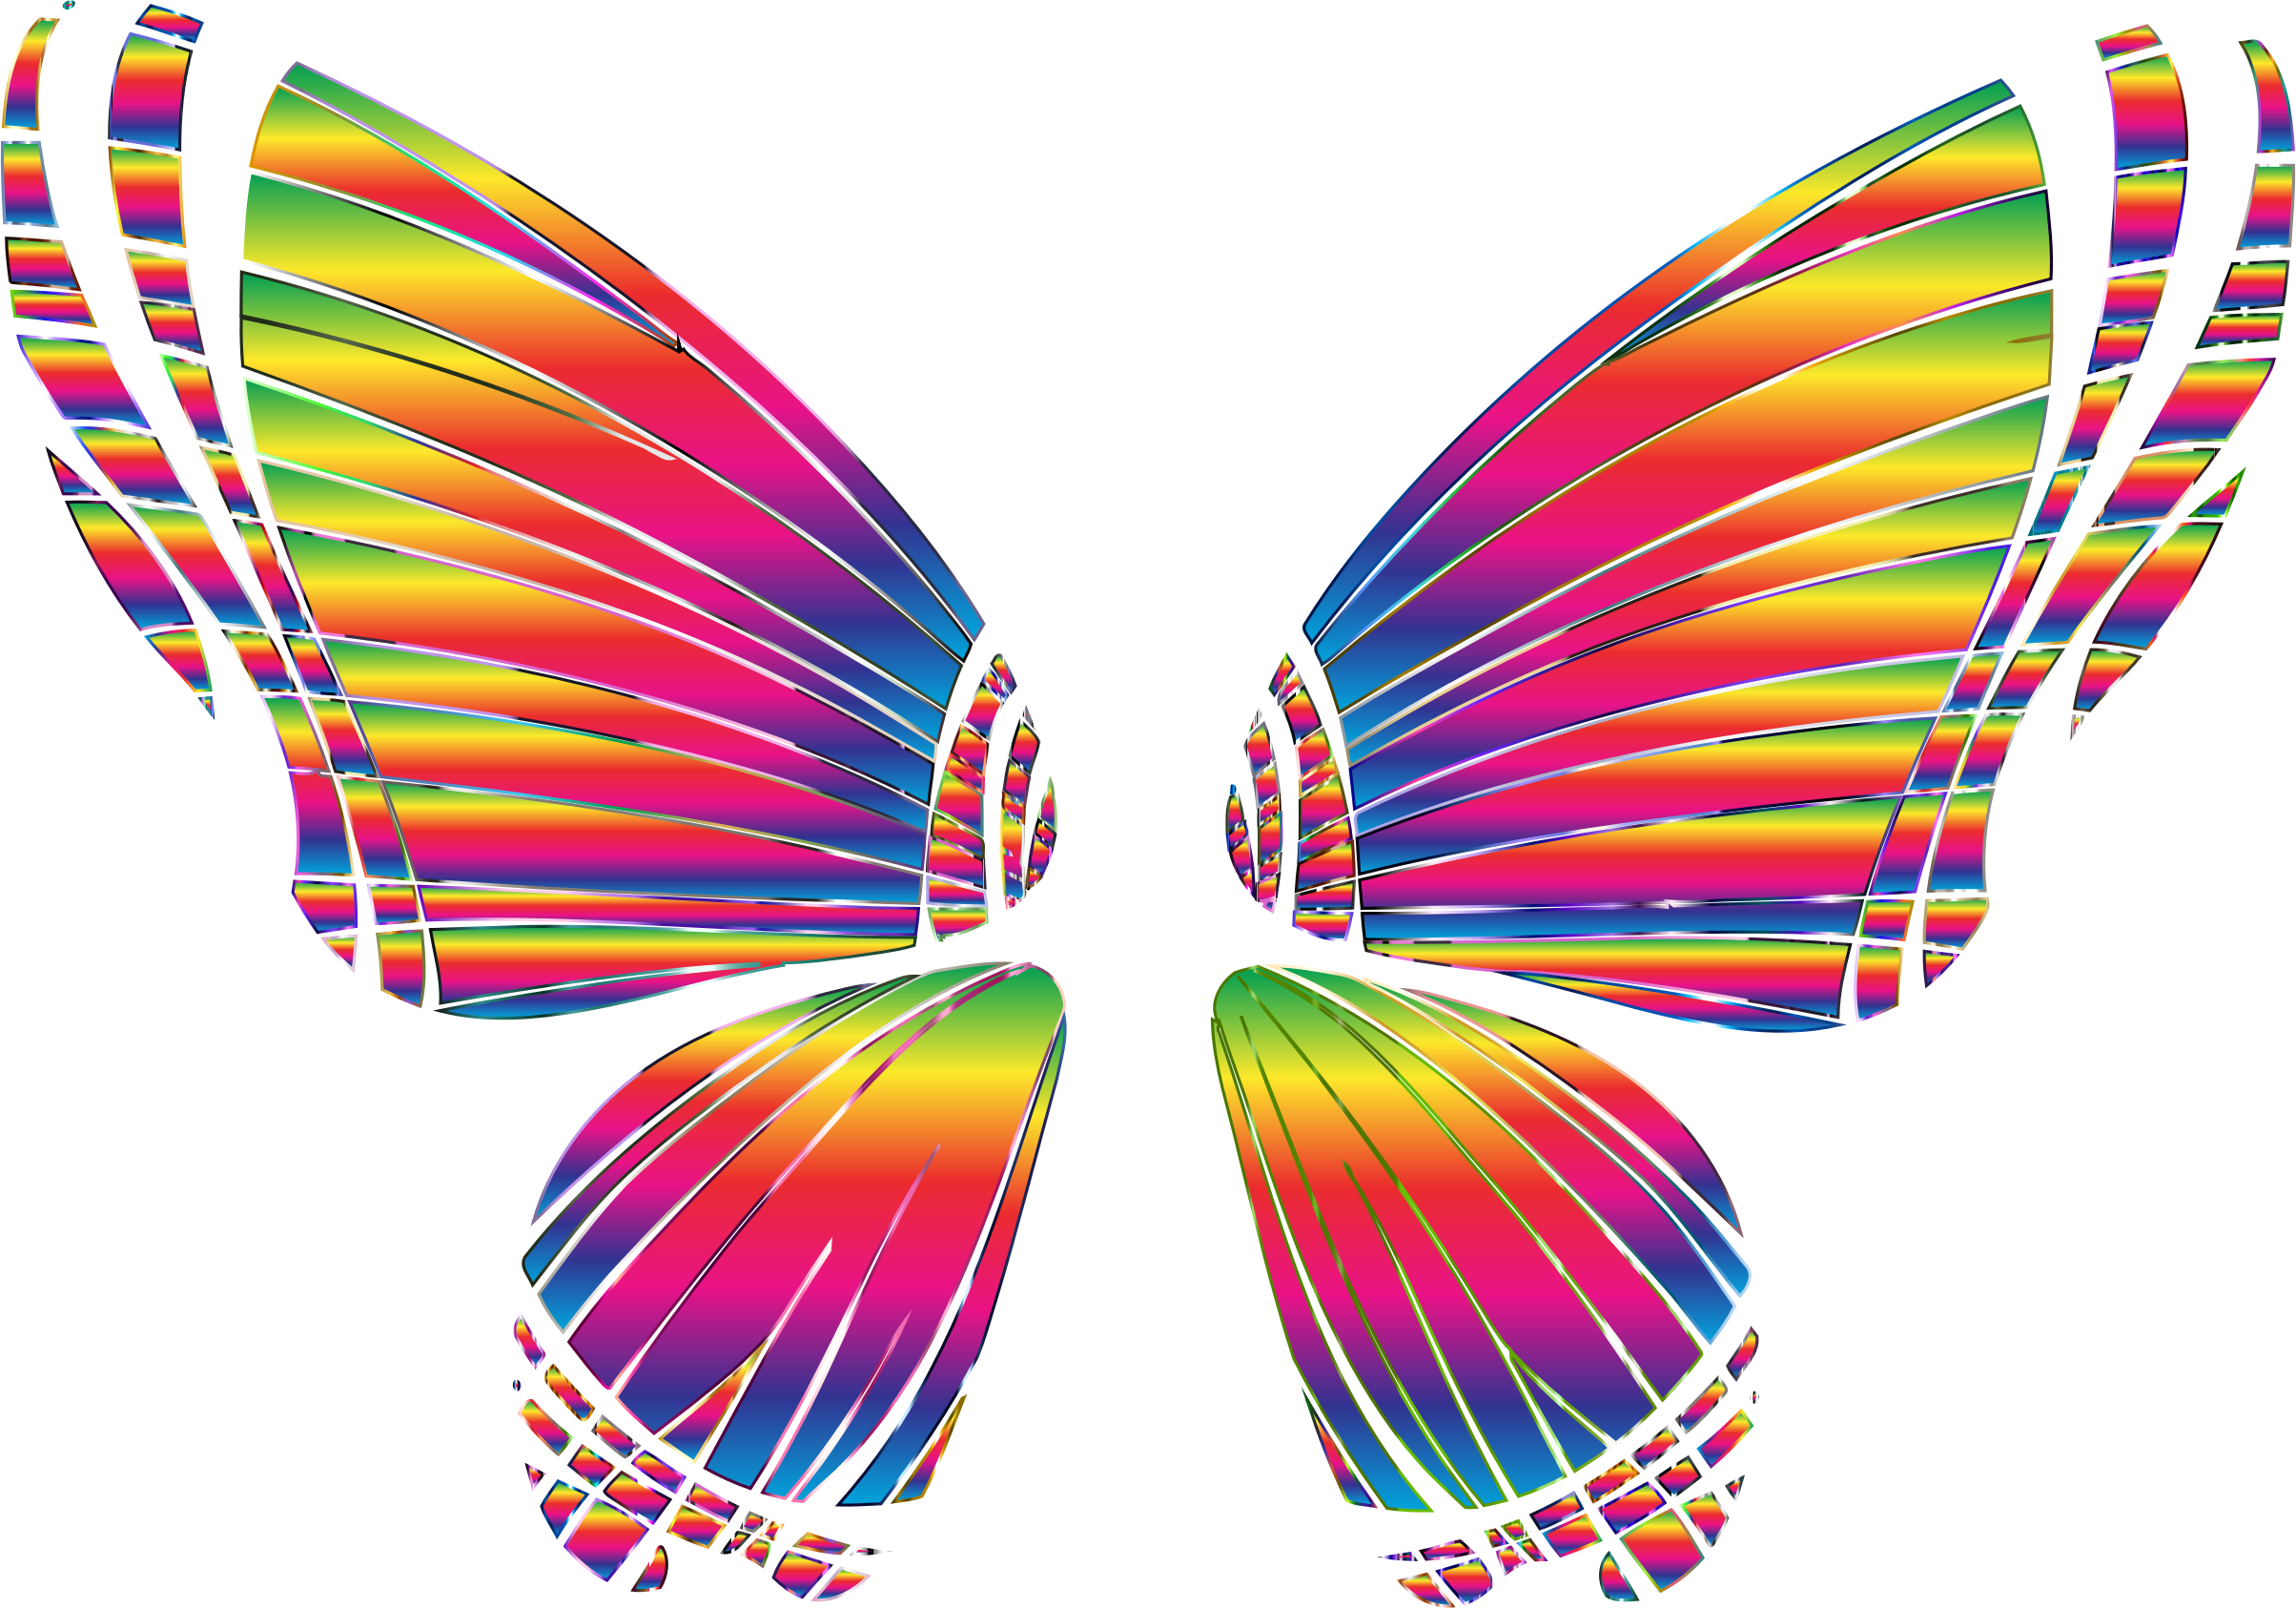 Basketball clipart rgb graphic free rgb butterfly silhouette 10 8 no background_bclipart - BClipart graphic free